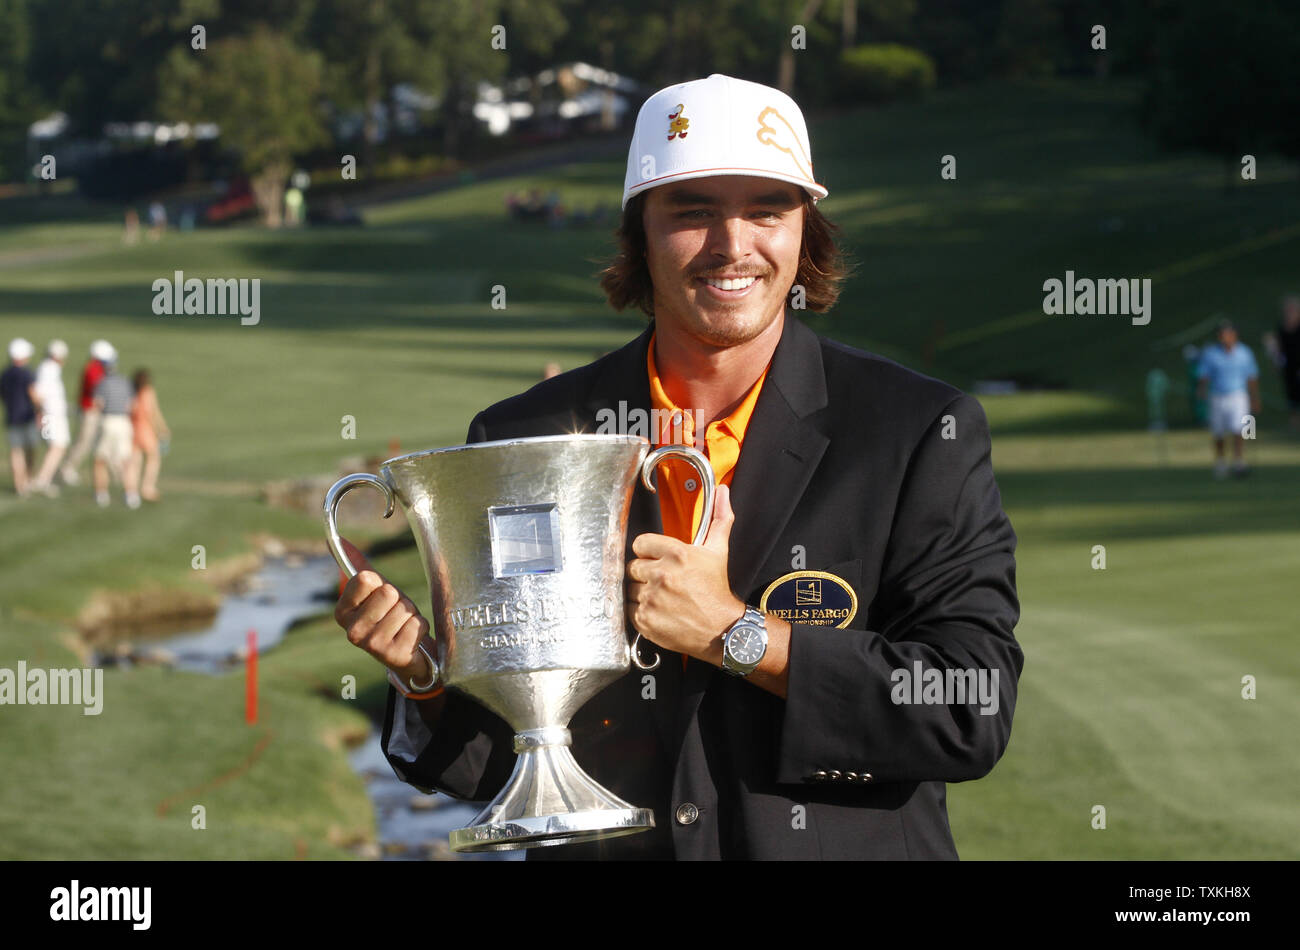 Ricky Fowler holds his trophy after winning the Wells Fargo Championship at Quail Hollow Club in Charlotte, North Carolina on May 6, 2012. Fowler earned his first PGA Tour win.  UPI/Nell Redmond - Stock Image